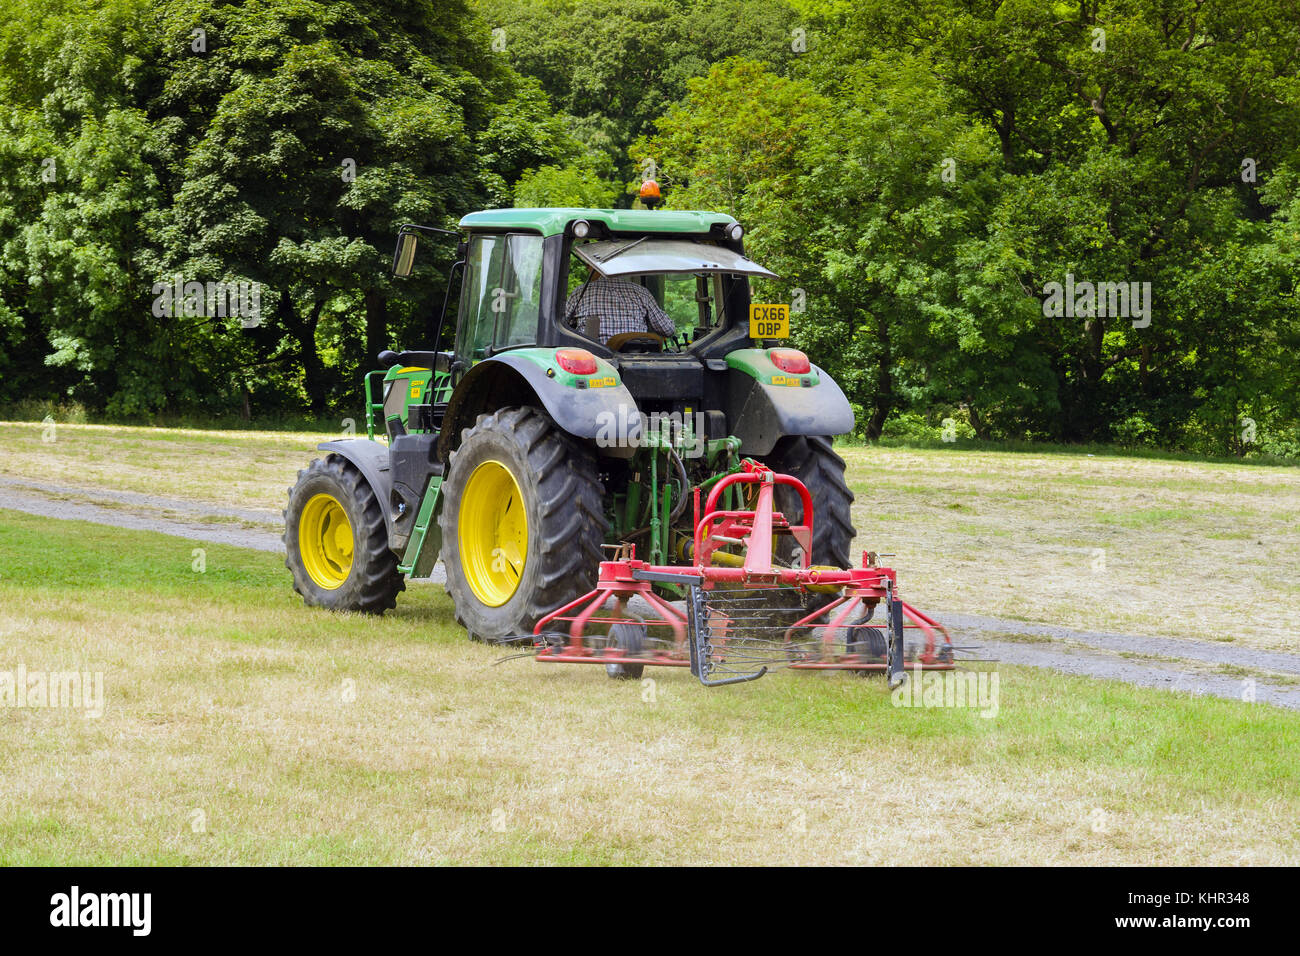 John Deere tractor working in a field with a twin rotor hay turner or tedder attachment a device for turning cut - Stock Image